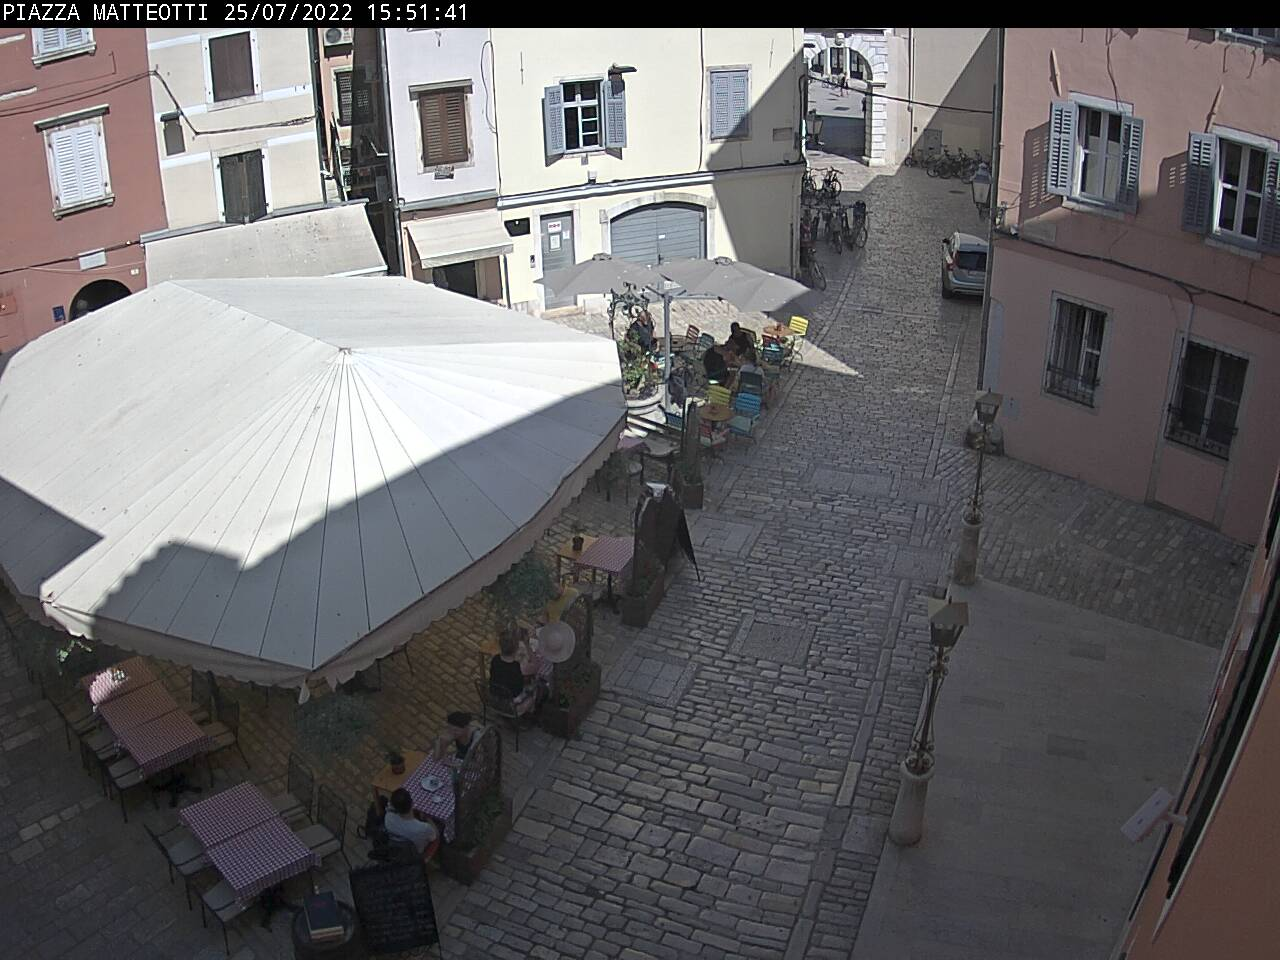 Rovinj webcam - Rovinj La Piazza webcam, Istria, Istria